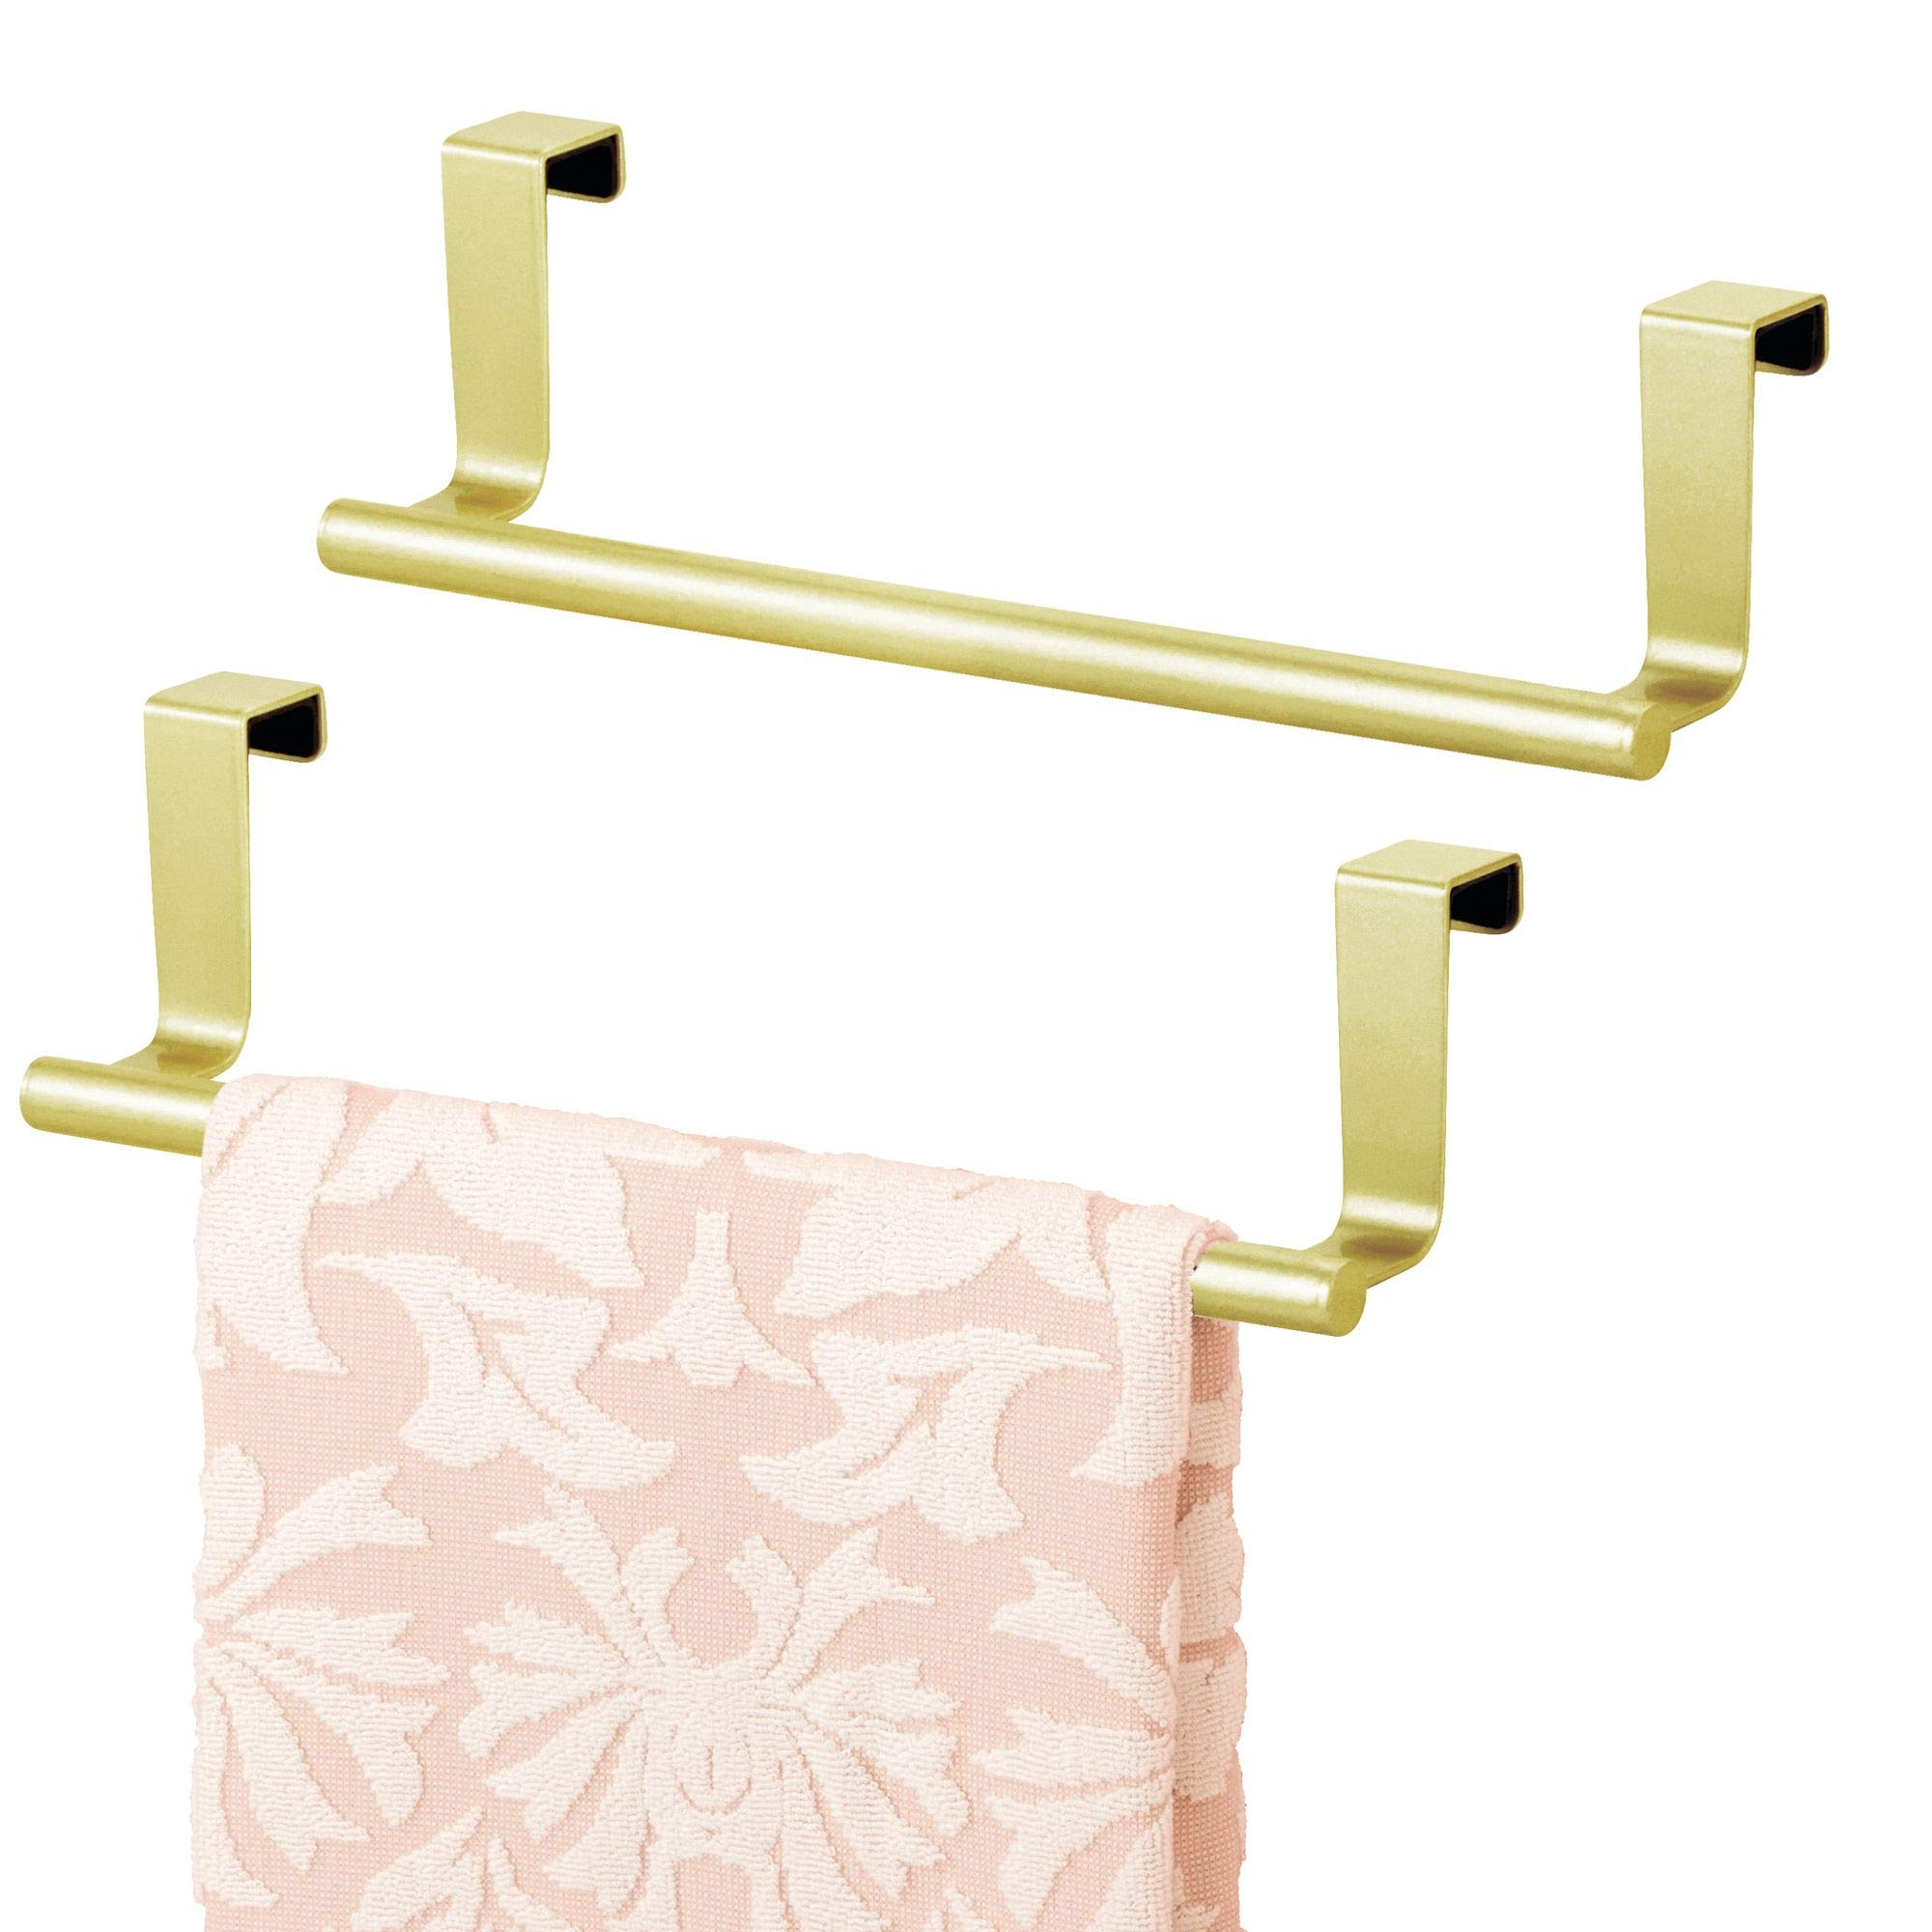 mDesign Decorative Kitchen Over Cabinet Stainless Steel Towel Bar - Hang on Inside or Outside of Doors, Storage and Display Rack for Hand, Dish, and Tea Towels - 9'' Wide, Pack of 2, Gold Brass